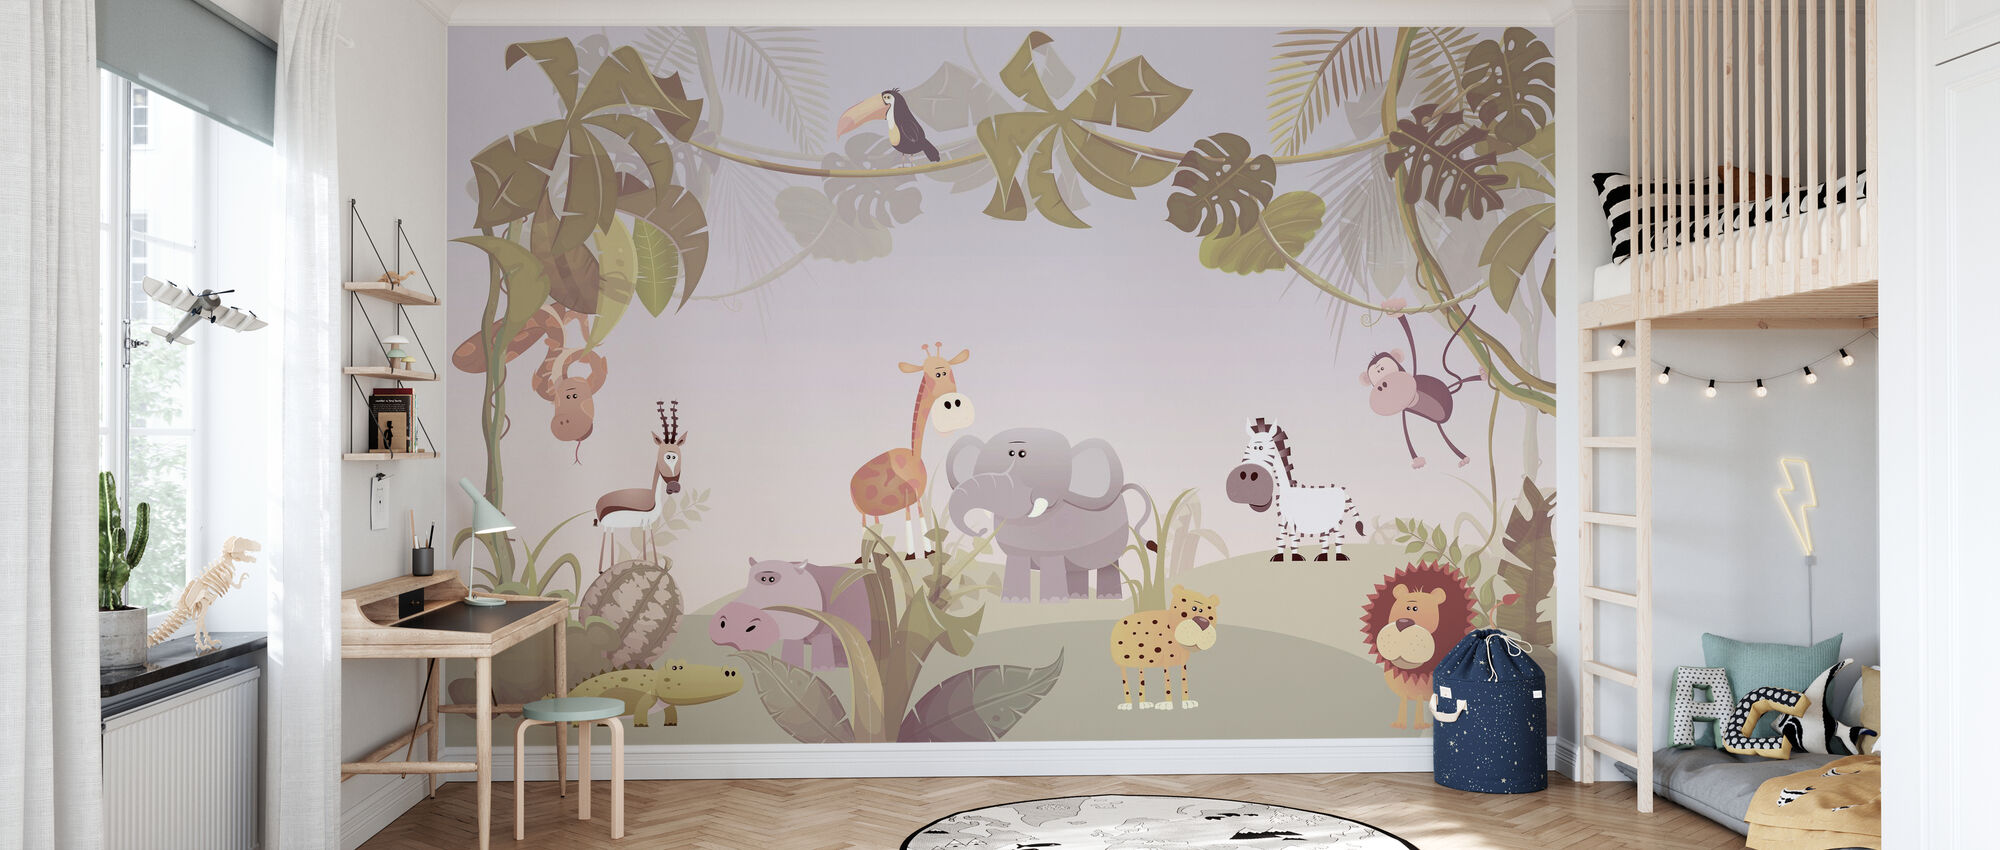 Savanna Animals - Wallpaper - Kids Room